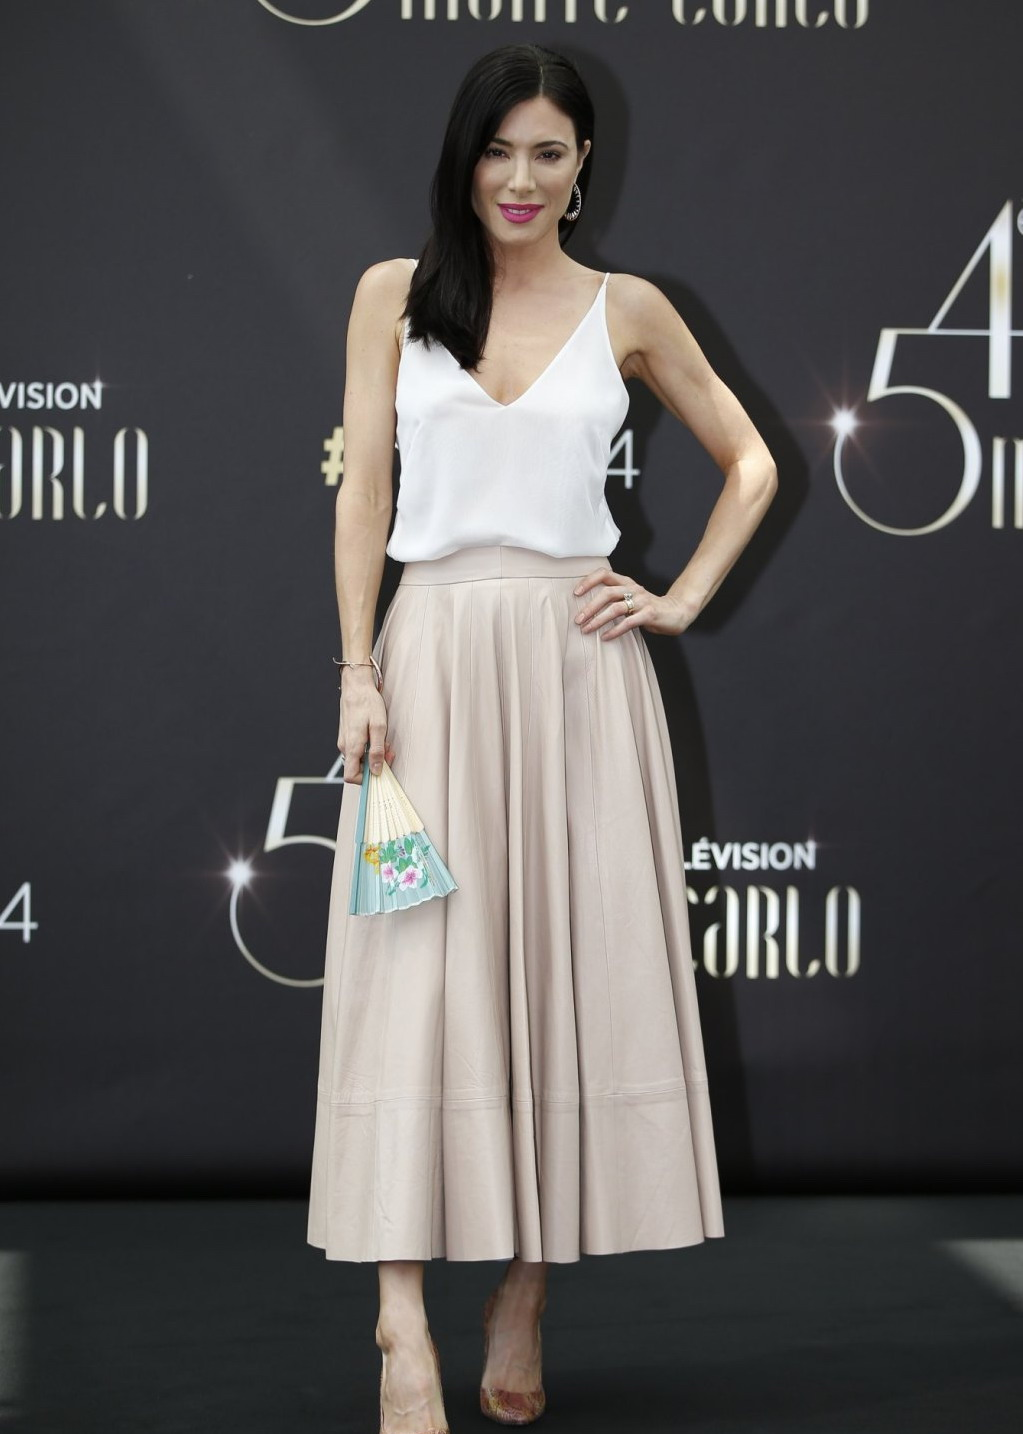 Jaime Murray Defiance photocall at the Monte Carlo TV Festival in Monaco